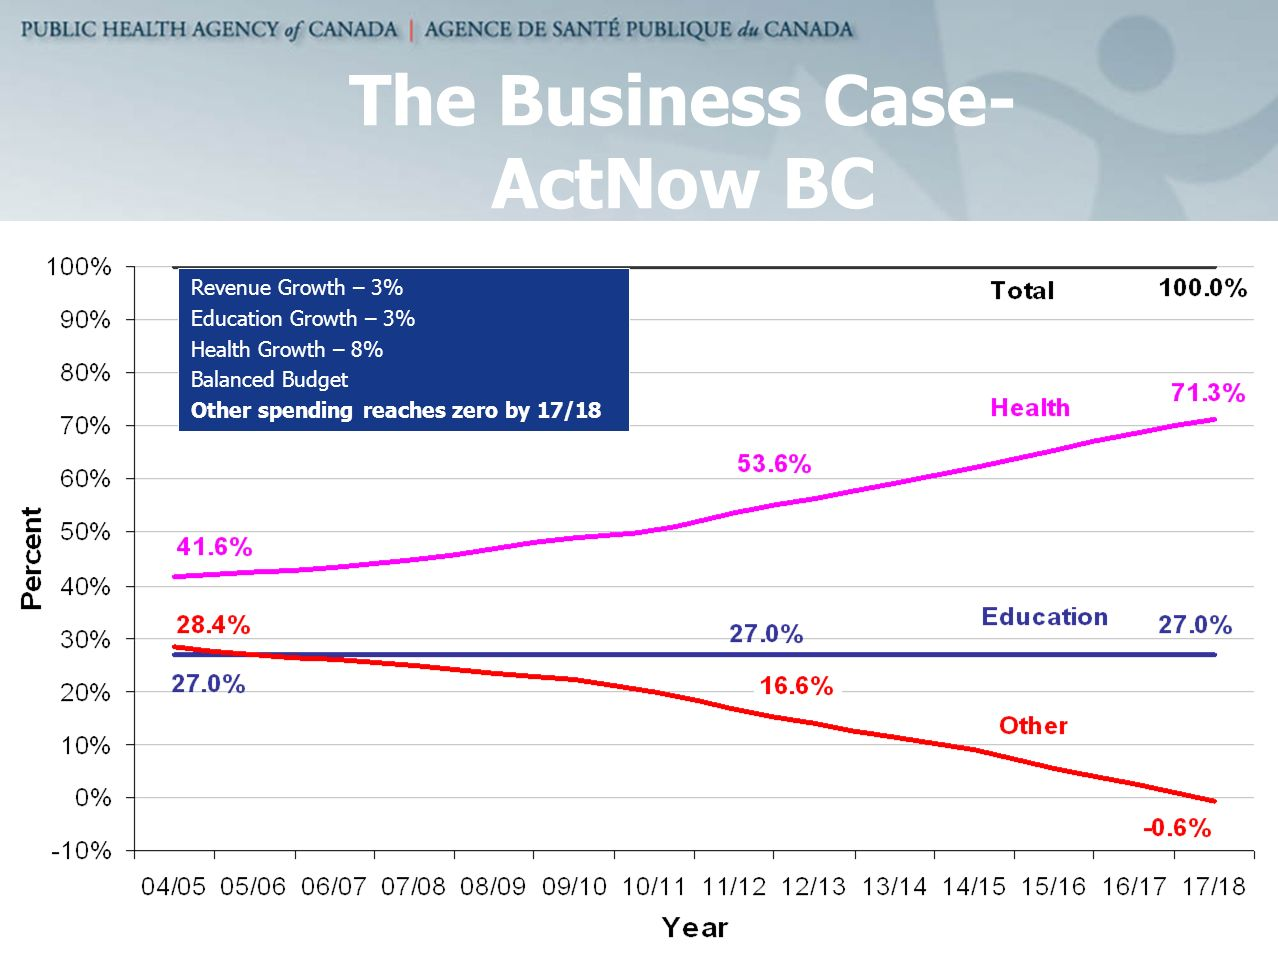 The Business Case- ActNow BC Revenue Growth – 3% Education Growth – 3% Health Growth – 8% Balanced Budget Other spending reaches zero by 17/18